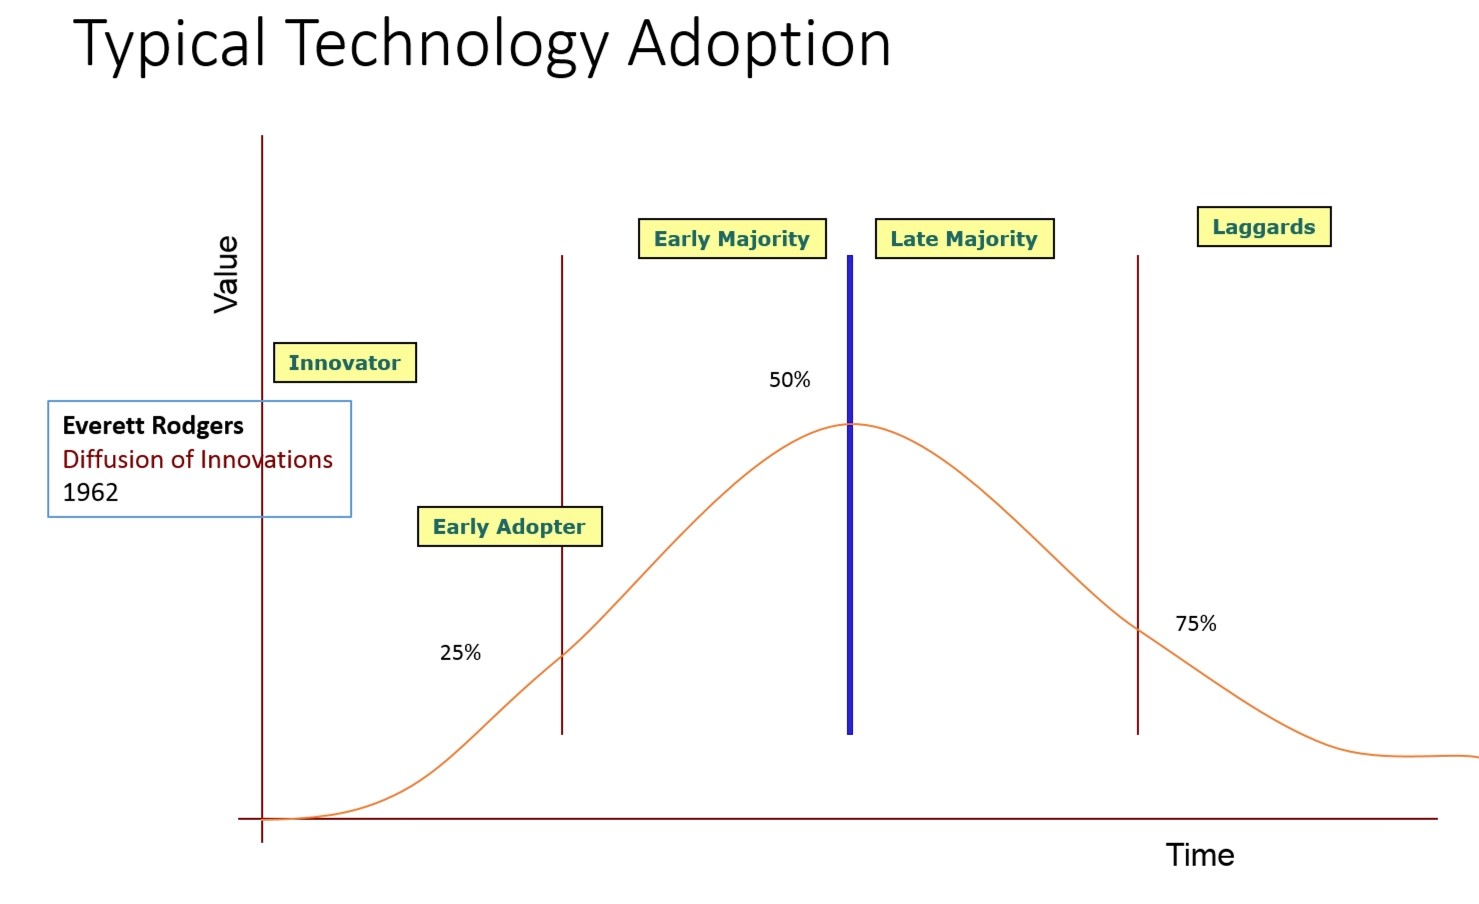 Typical Technology Adoption